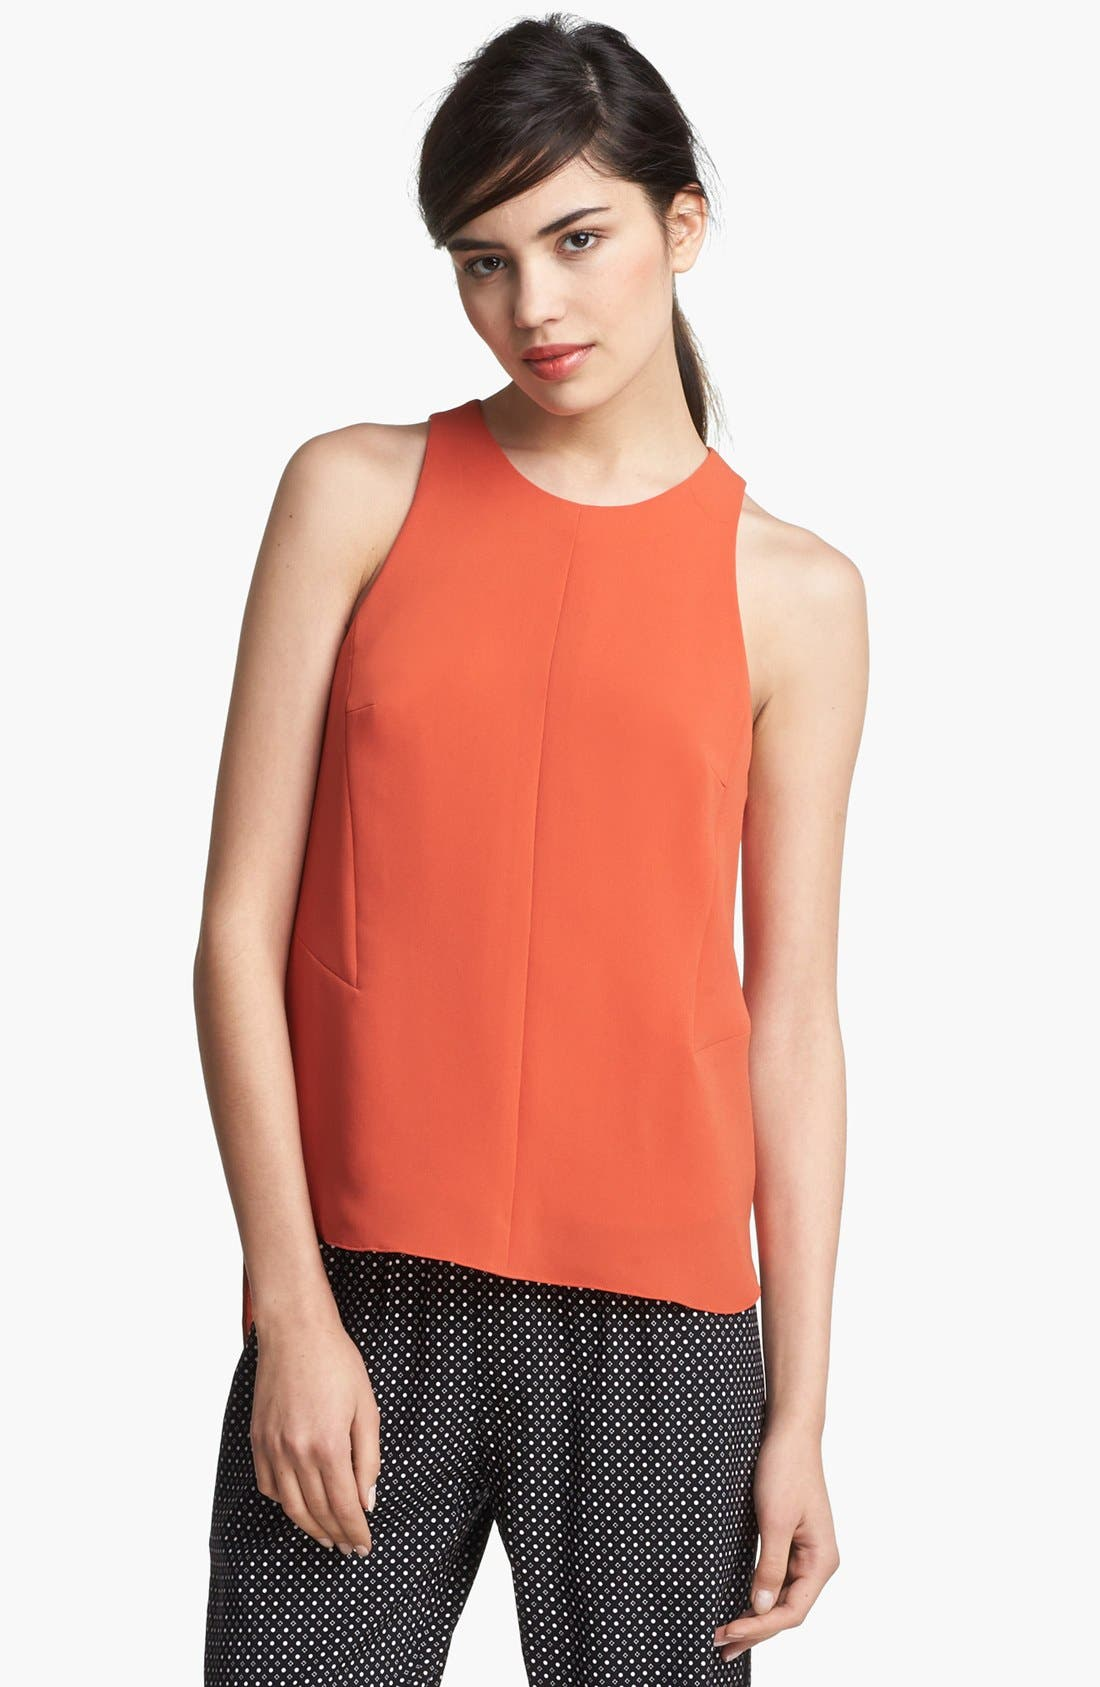 Main Image - rag & bone 'Adeline' High/Low Racerback Top